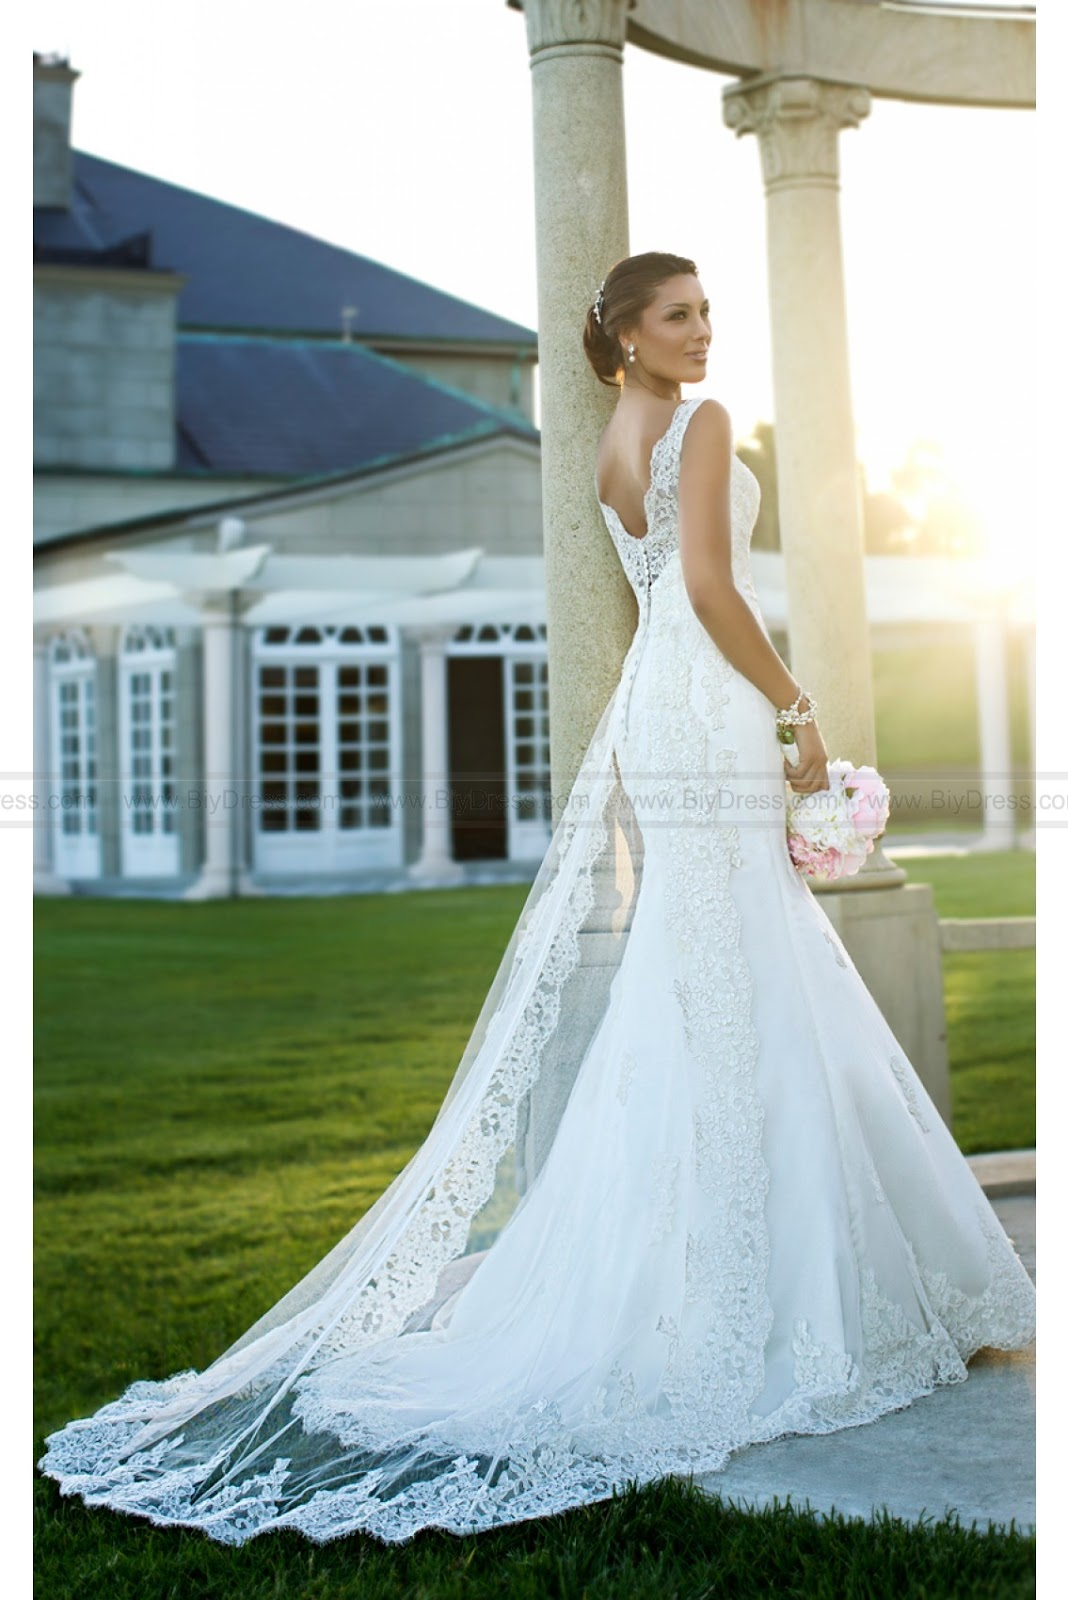 2016 Cheap Wedding Dresses Online at biydress.com: 七月 2015